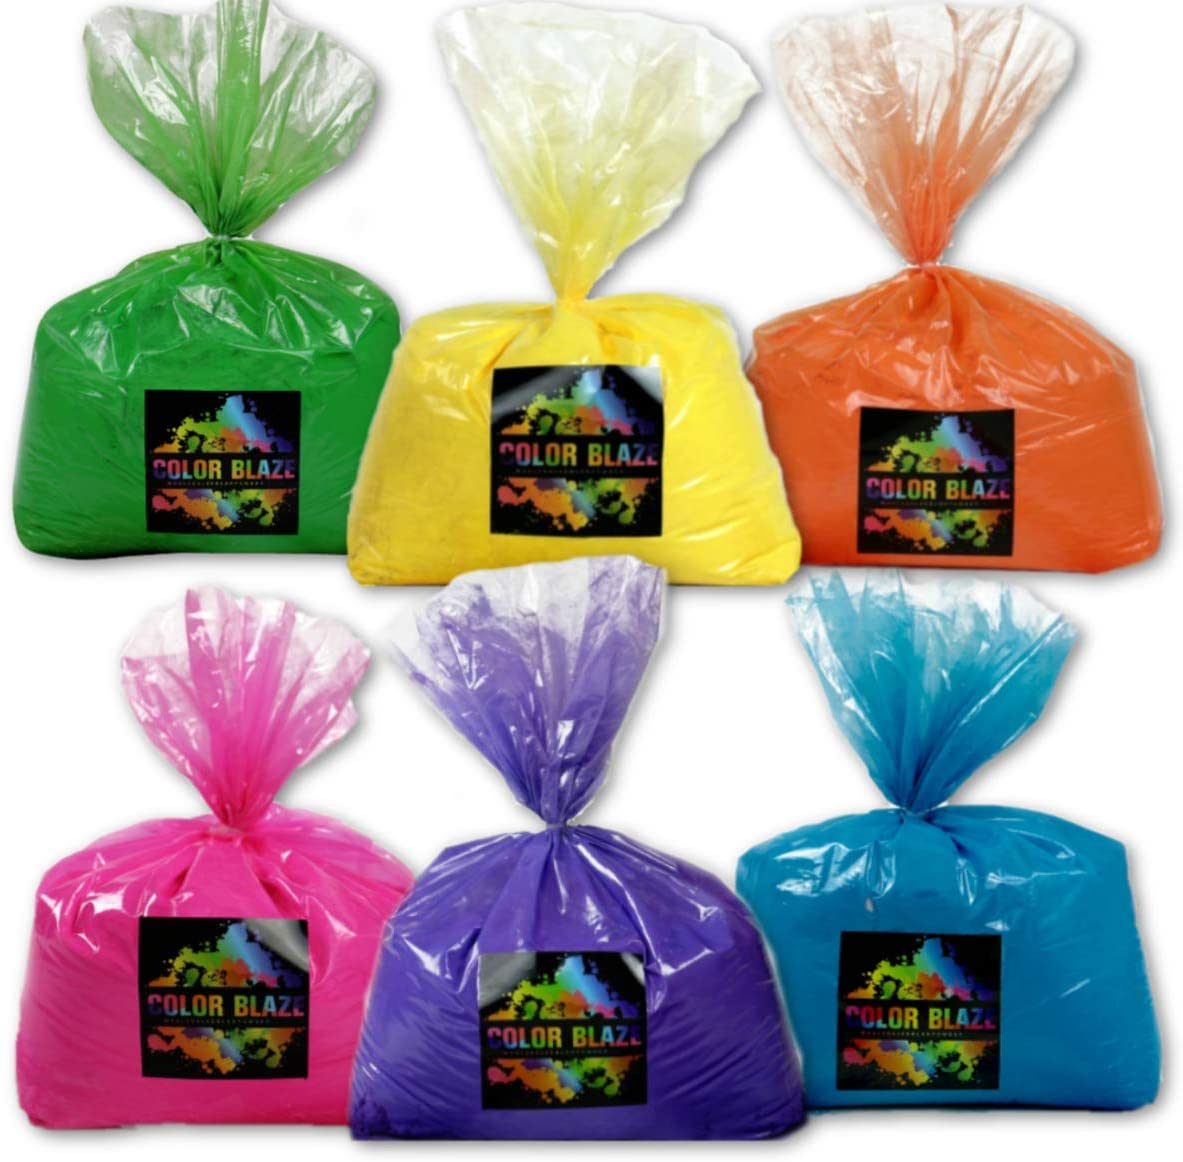 Color Blaze Six Pack - 5 pounds Each of Pink, Orange, Yellow, Green, Blue, Purple – Perfect for Fun Runs, Youth Groups, Color Wars, School fundraisers, Birthday Parties, Summer Camps - 30 lbs Total